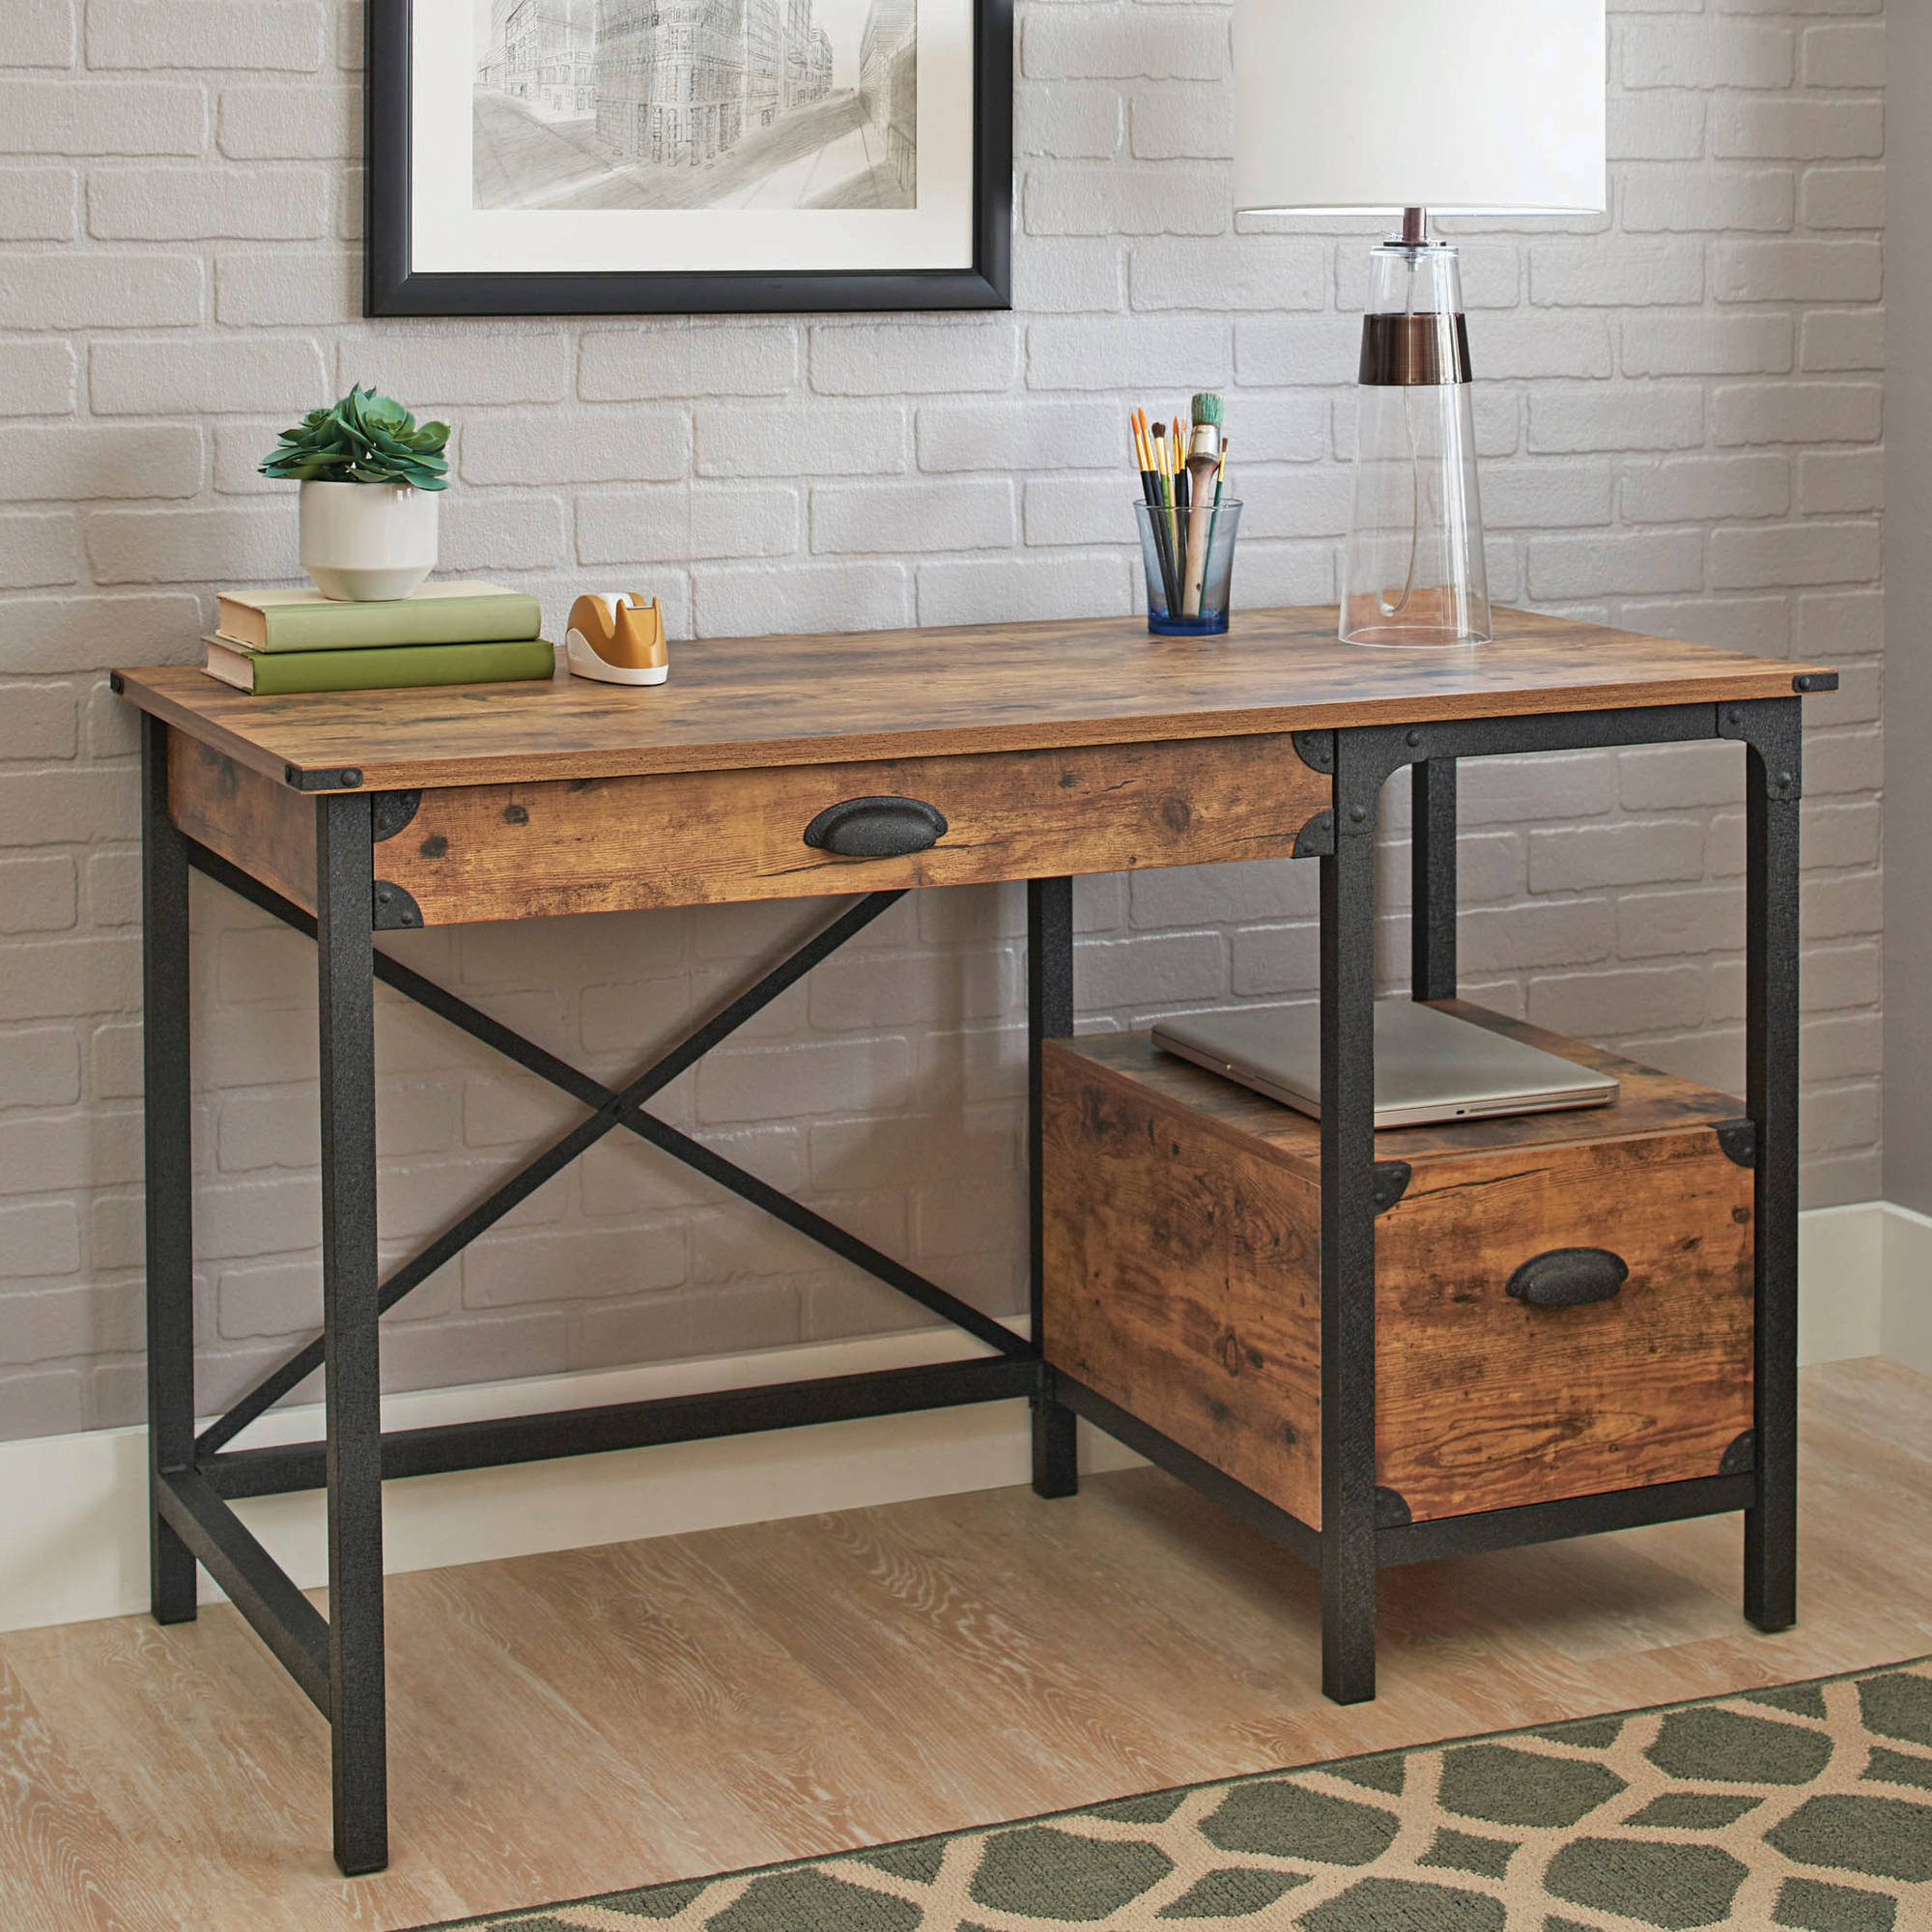 Better Homes And Gardens Rustic Country Desk, Weathered Pine Finish